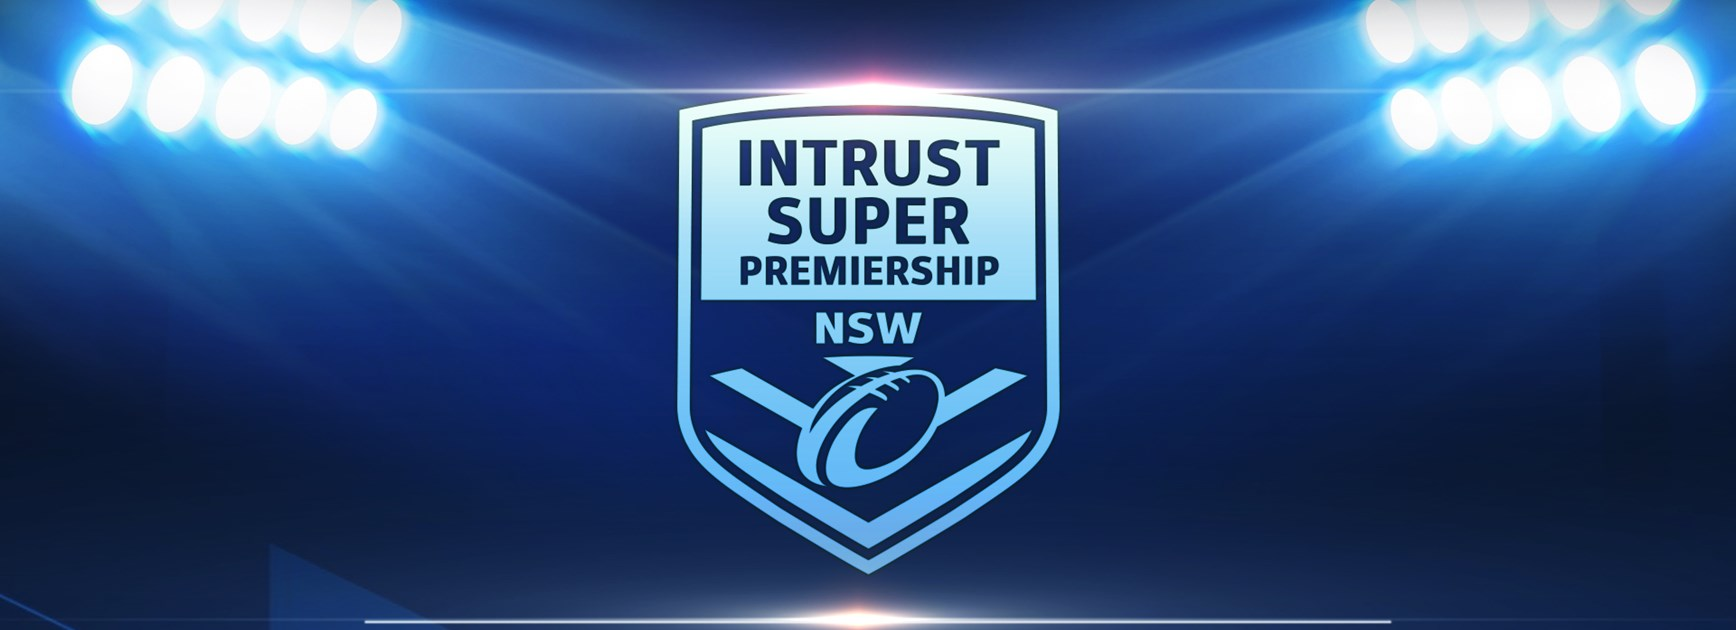 2018 Intrust Super Premiership NSW Team Of The Year